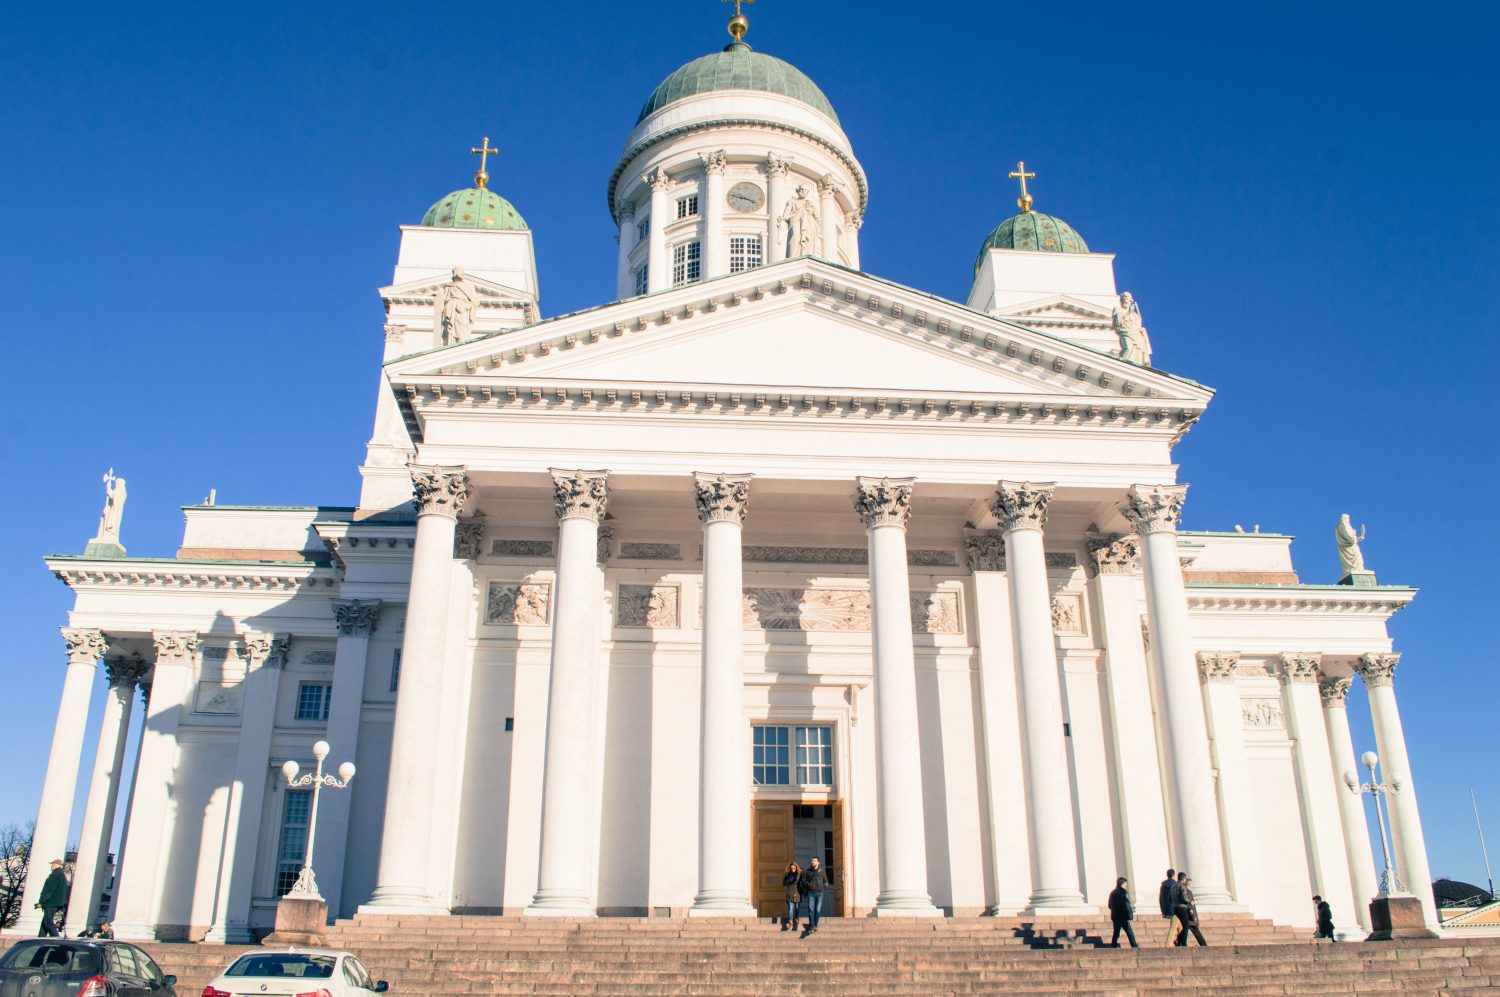 Helsinki Cathedral by Christina Guan